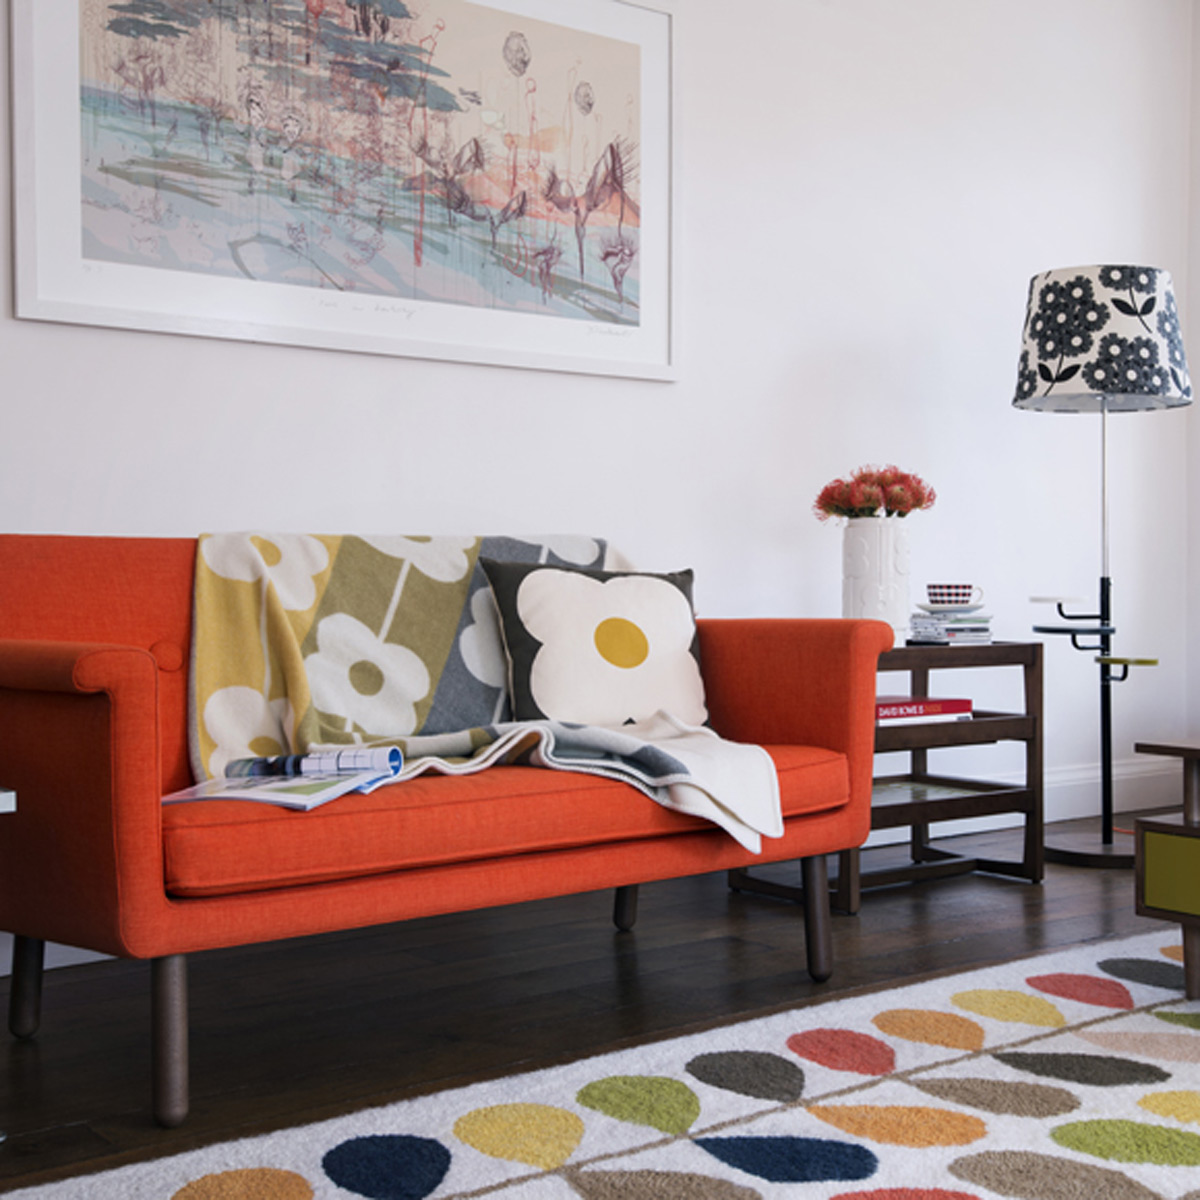 Style Through The Decades  Home Decorating Ideas  Good